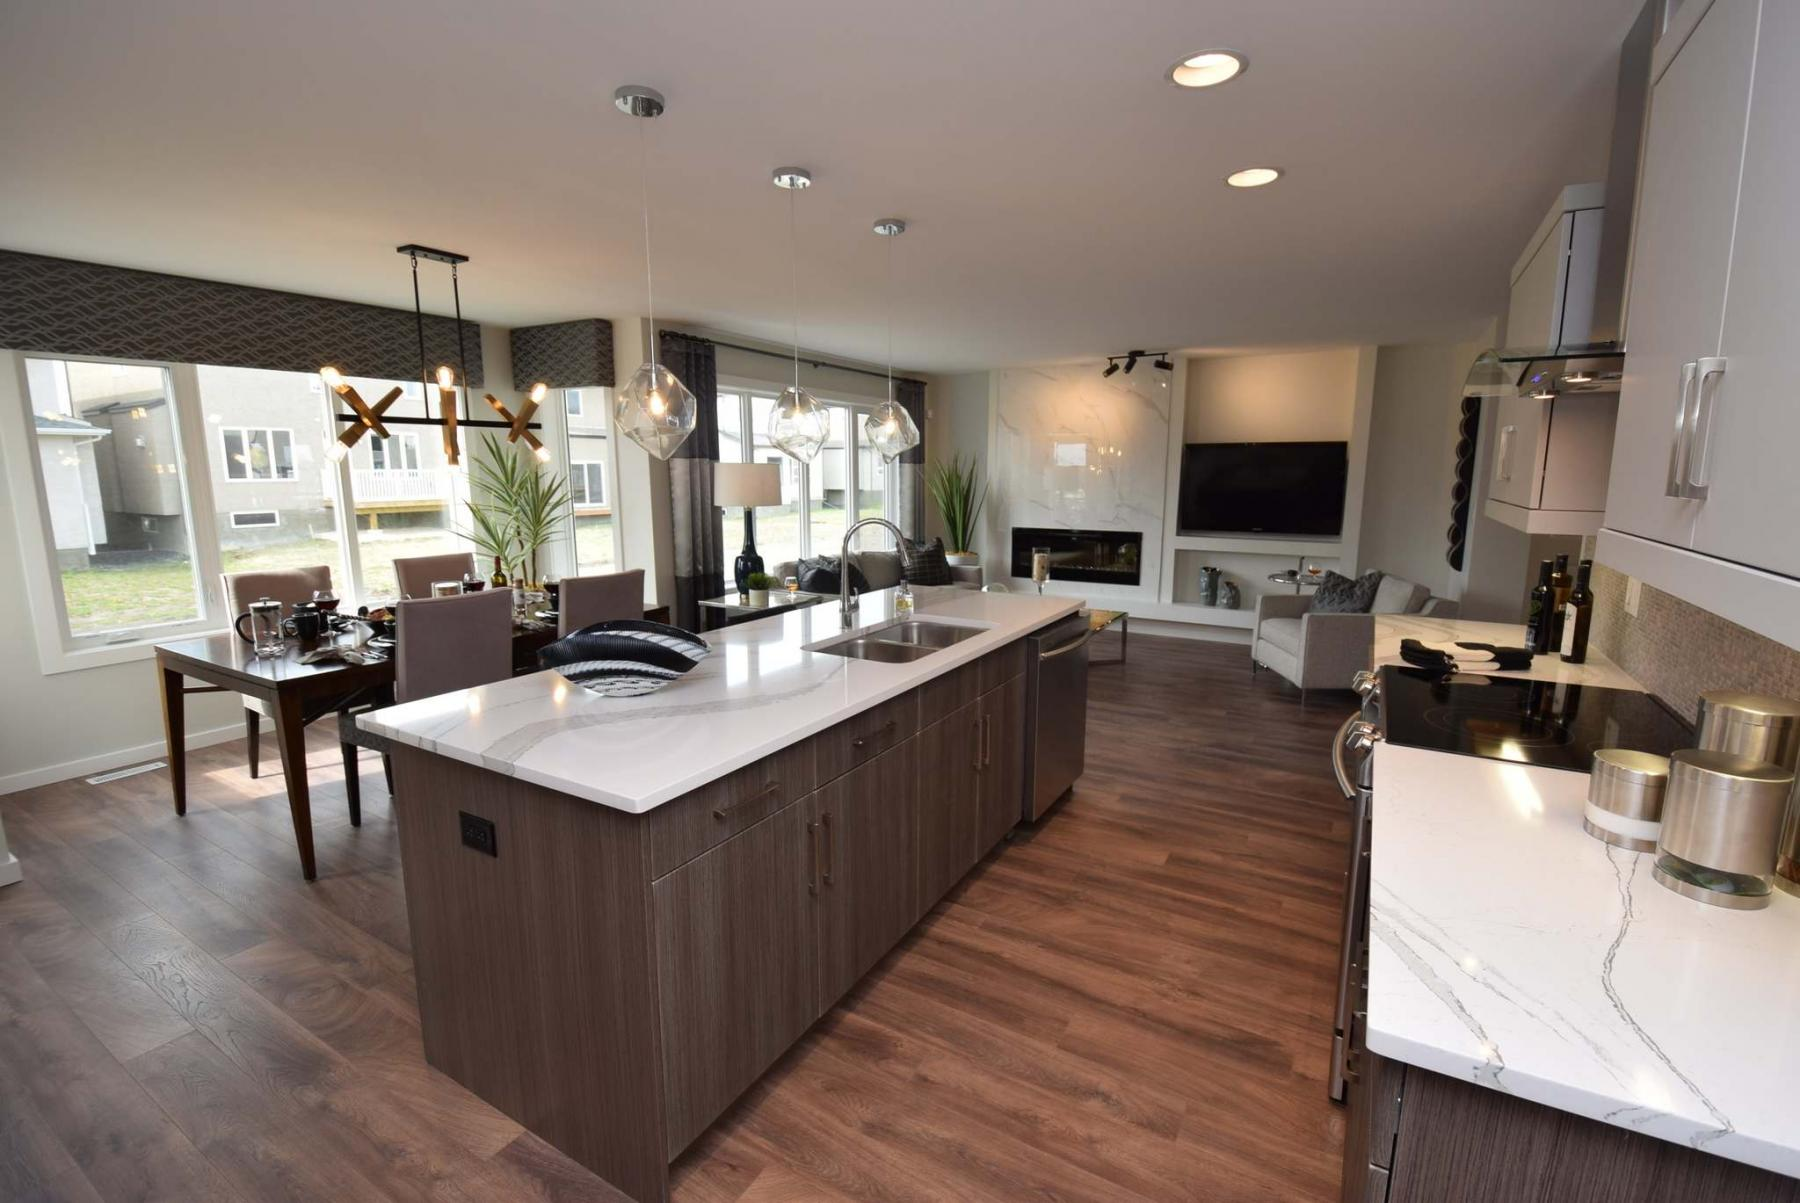 <p>Todd Lewys / Winnipeg Free Press</p><p>The kitchen's off-white/grey quartz countertops complement the rest of the finishes, like the main floor's laminate plank flooring, to create a warm, open feel.</p>